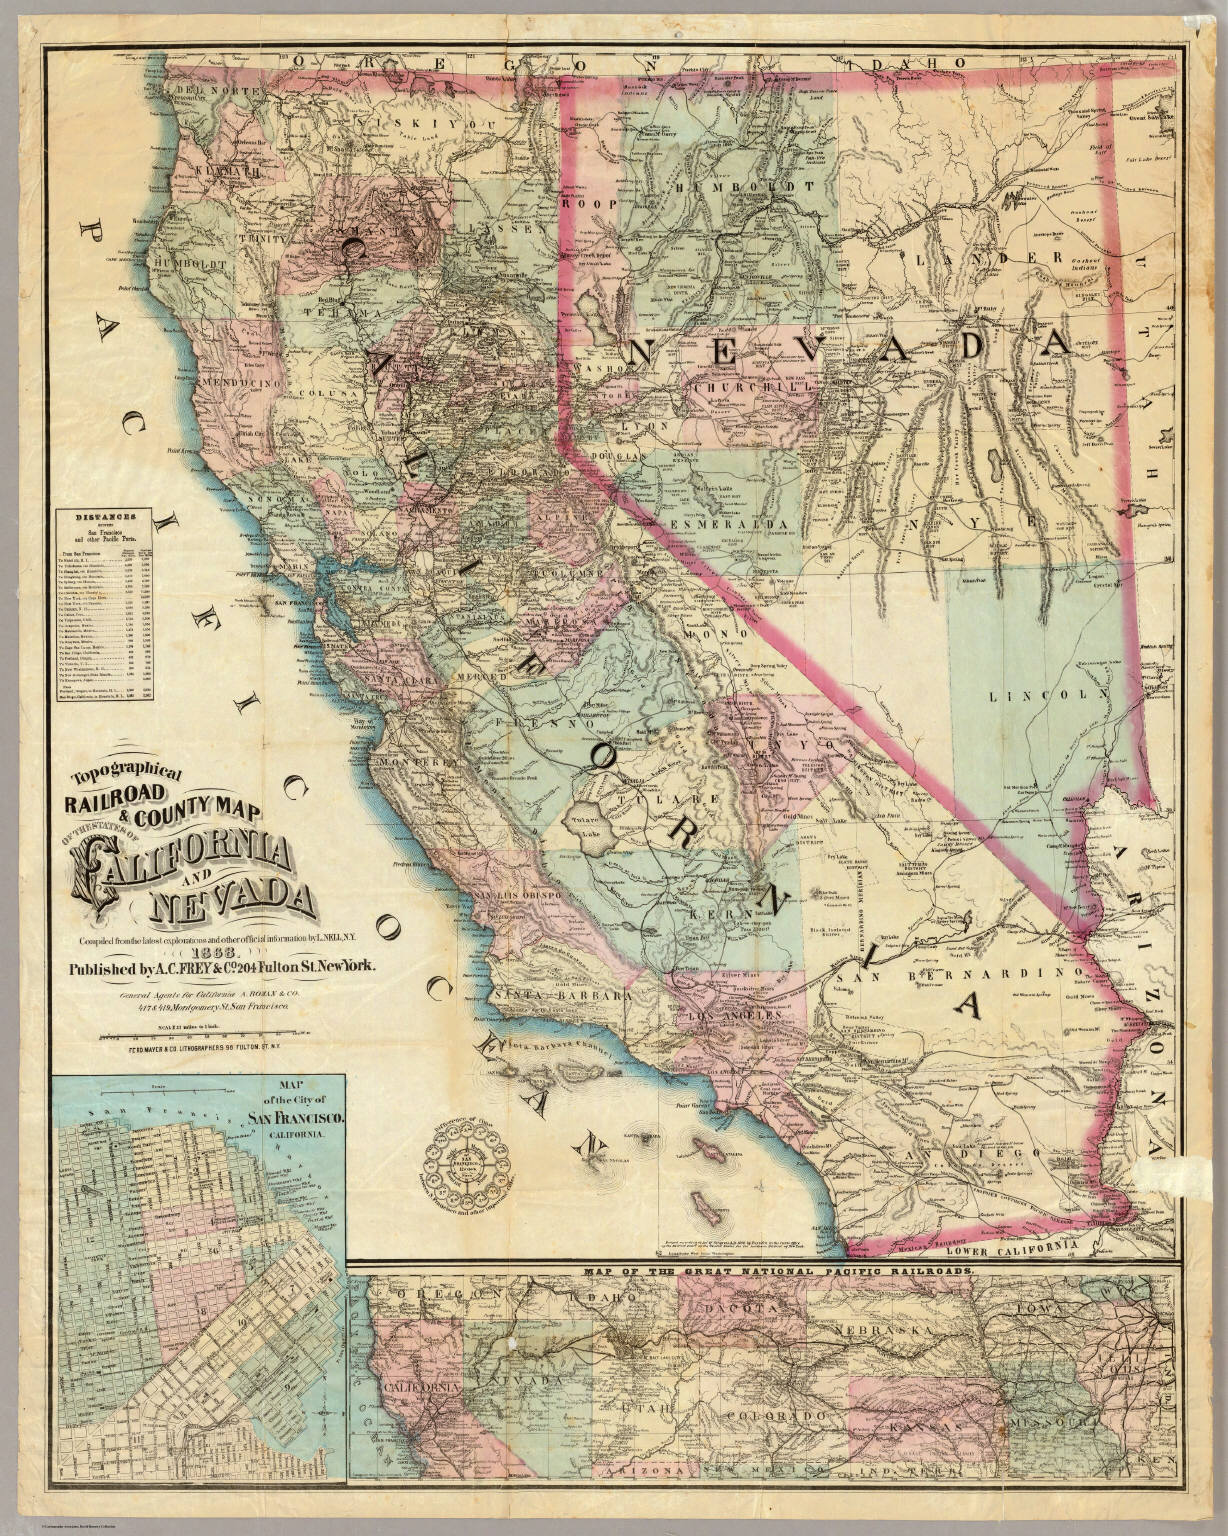 Railroad County Map Of The States Of California And Nevada